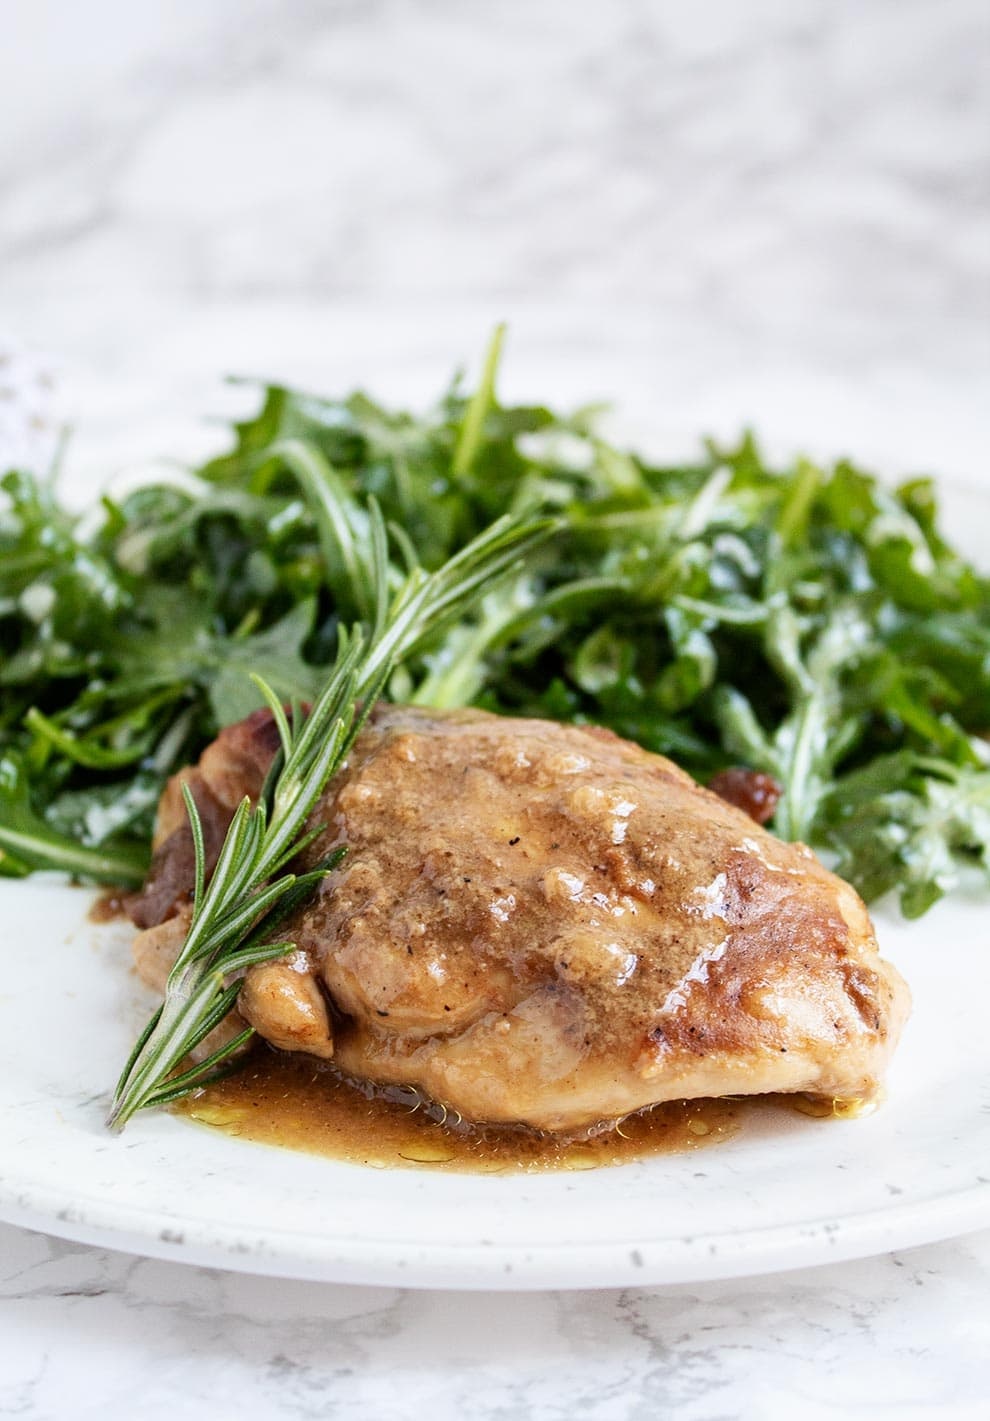 keto chicken thighs garnished with a rosemary sprig on a plate with arugula salad